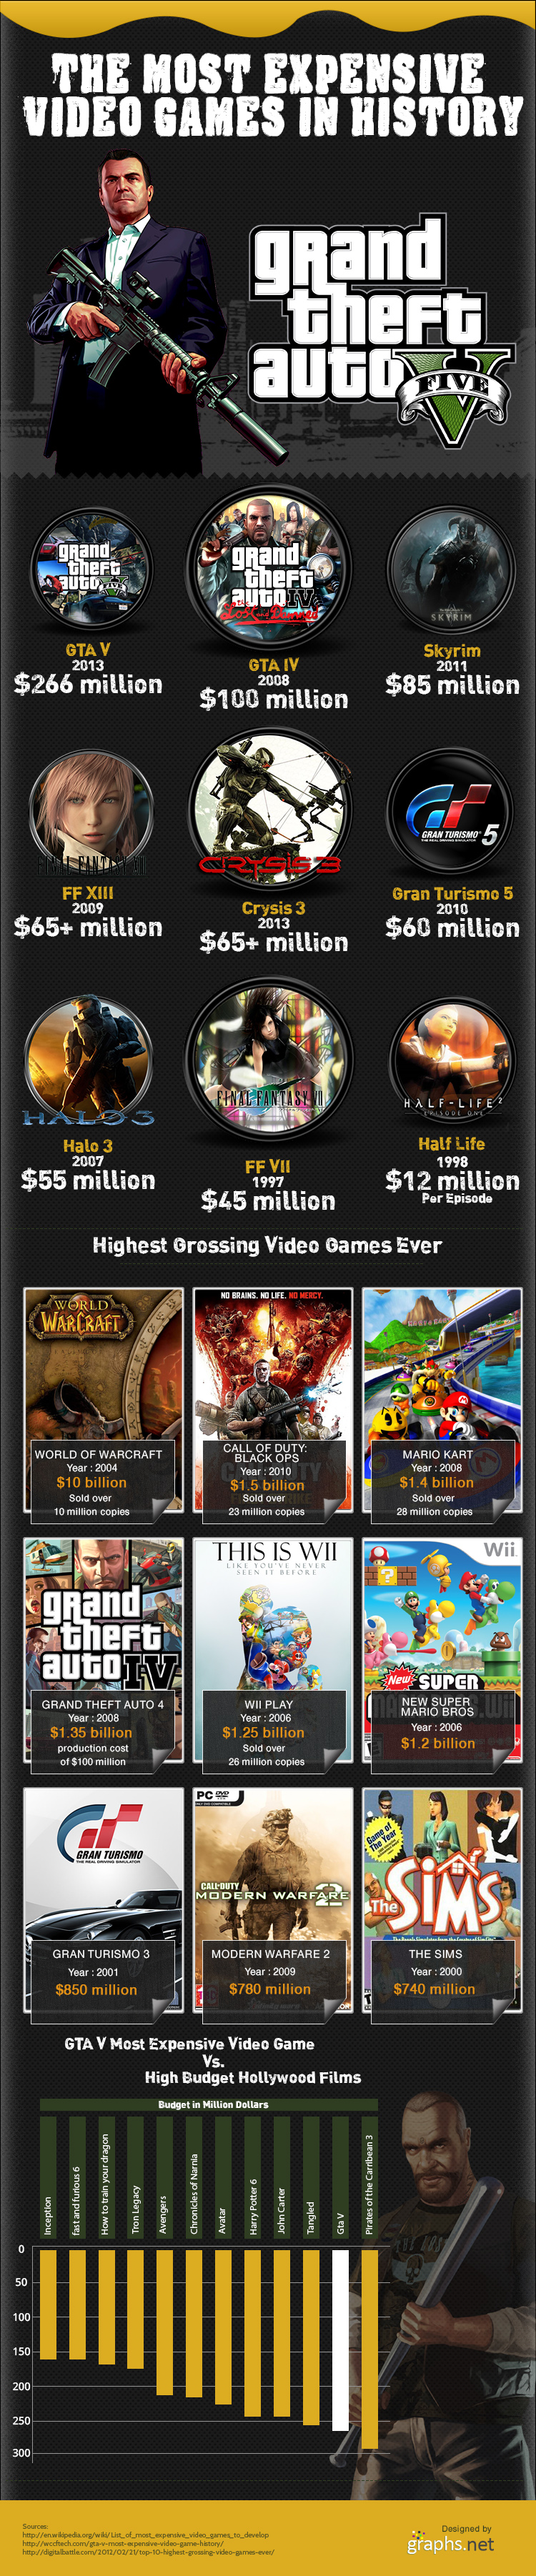 Most-Expensive-Video-Games-Infographic